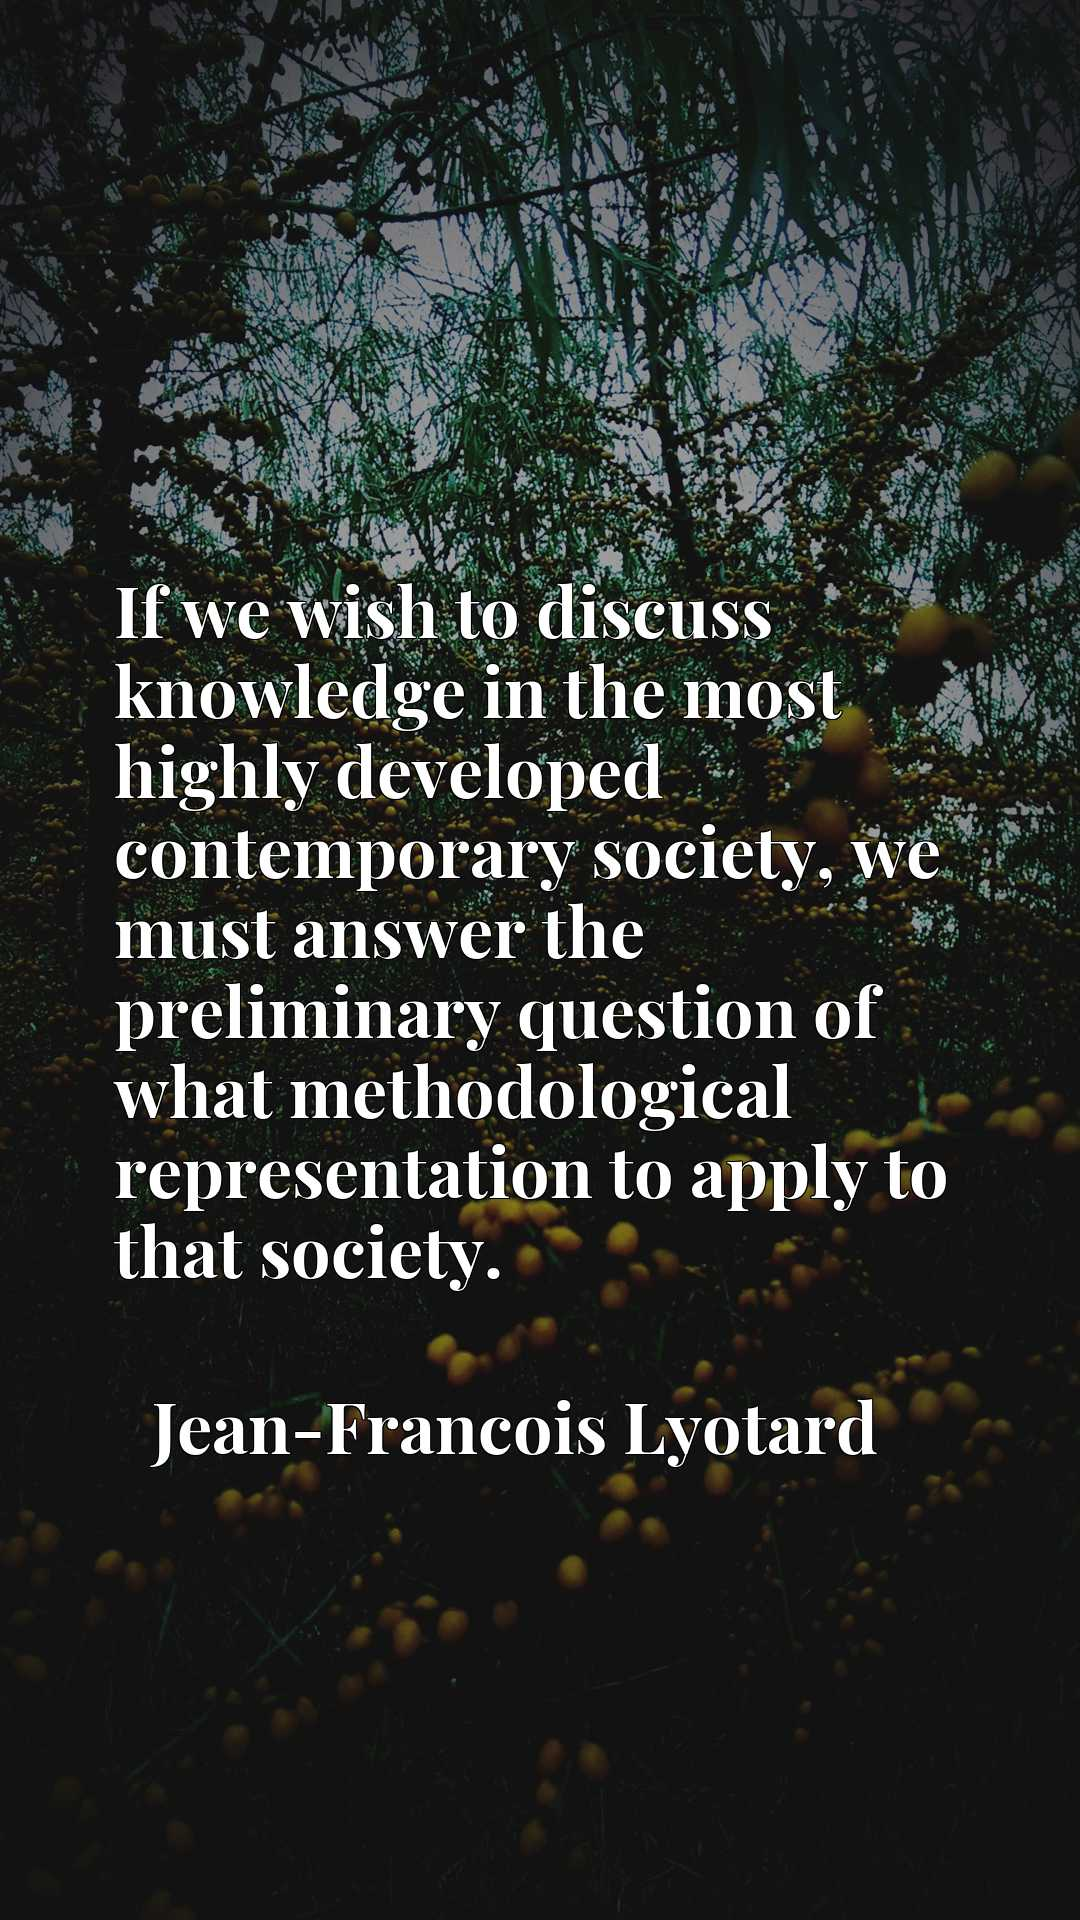 Quote Picture :If we wish to discuss knowledge in the most highly developed contemporary society, we must answer the preliminary question of what methodological representation to apply to that society.